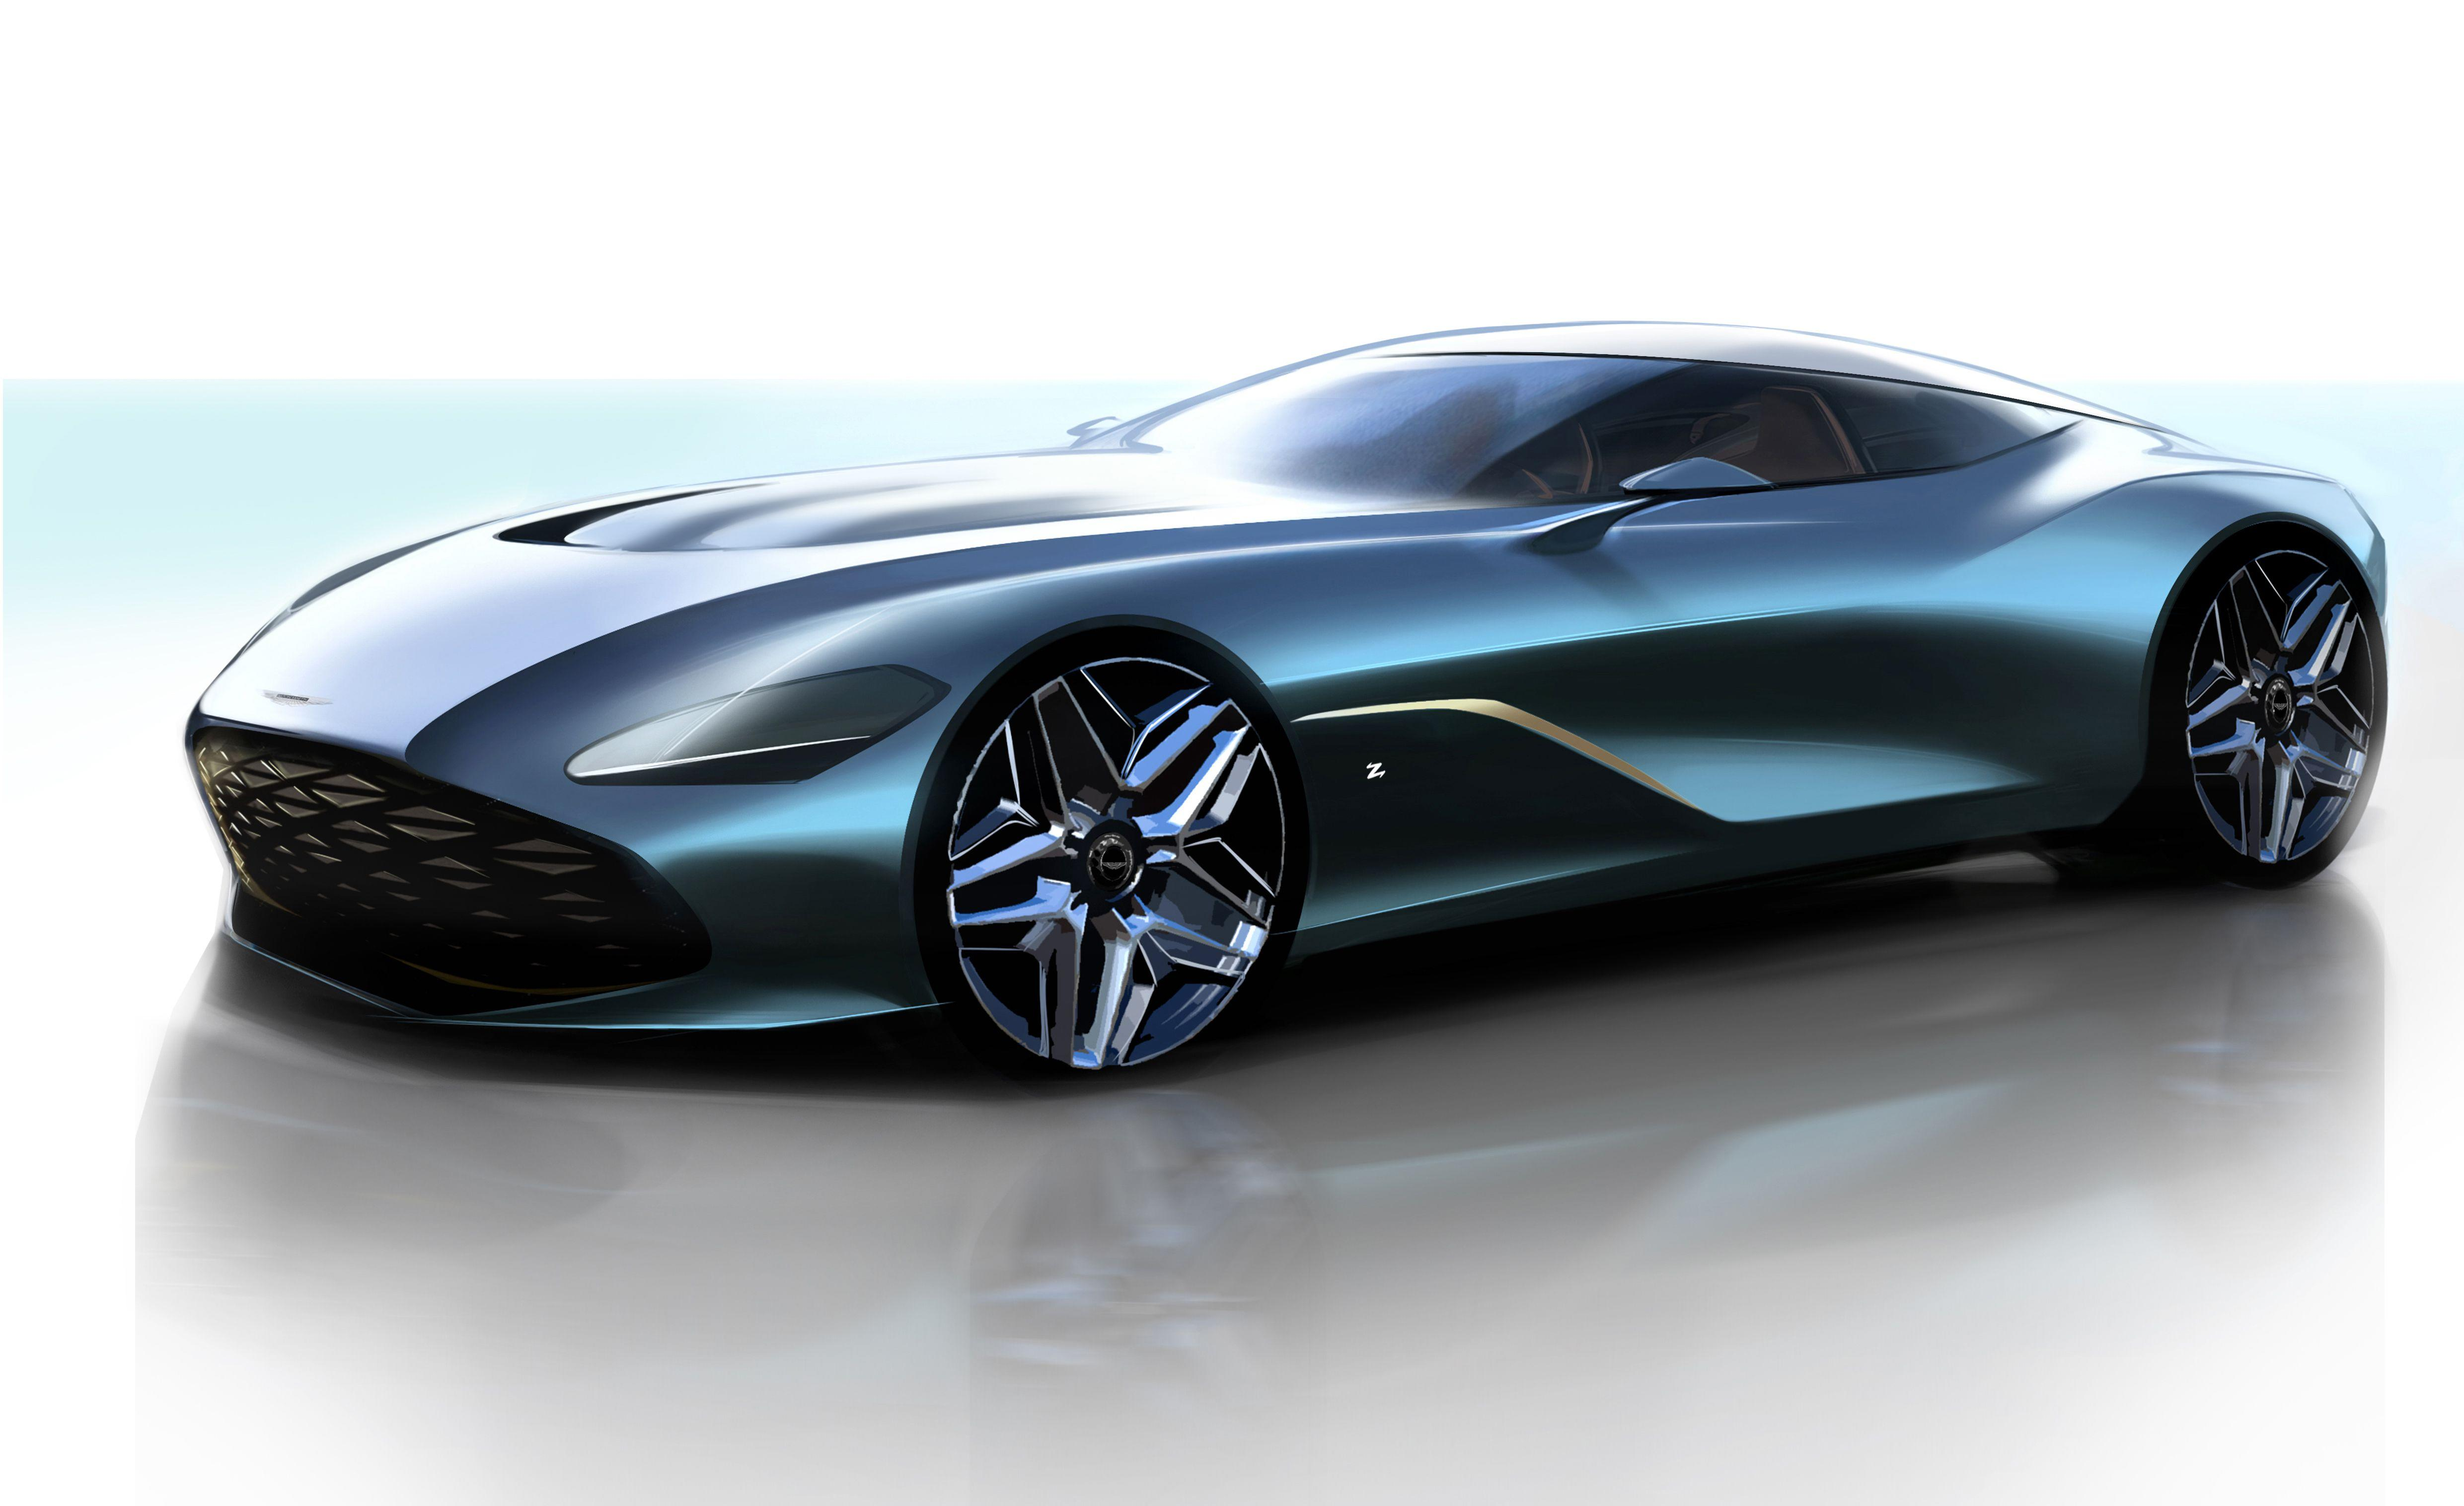 """<p>We told you about Aston's plans for a <a href=""""https://www.caranddriver.com/news/a23285641/aston-martin-zagato-specials/"""" rel=""""nofollow noopener"""" target=""""_blank"""" data-ylk=""""slk:Zagato-themed two-for-one offer"""" class=""""link rapid-noclick-resp"""">Zagato-themed two-for-one offer</a> late last year, and now the British sports-car maker has released some renderings to hint at what the forthcoming DBS GT Zagato will look like when it appears next year.</p>"""